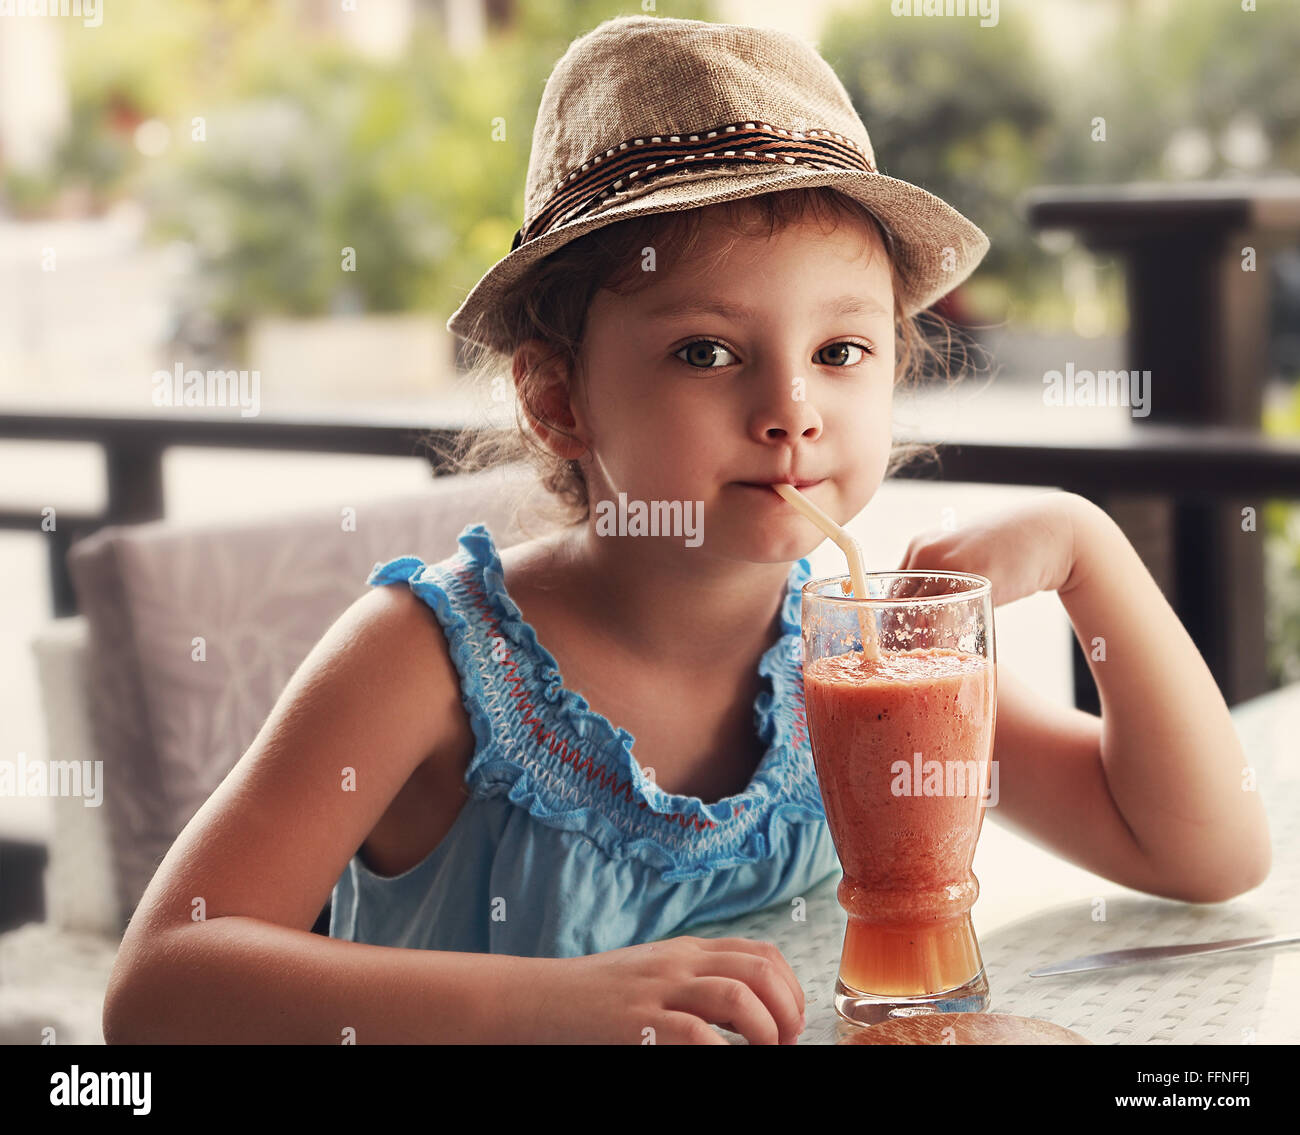 Fun kid girl in fashion hat smoothie potable jus dans street restaurant. Tonique closeup portrait Photo Stock